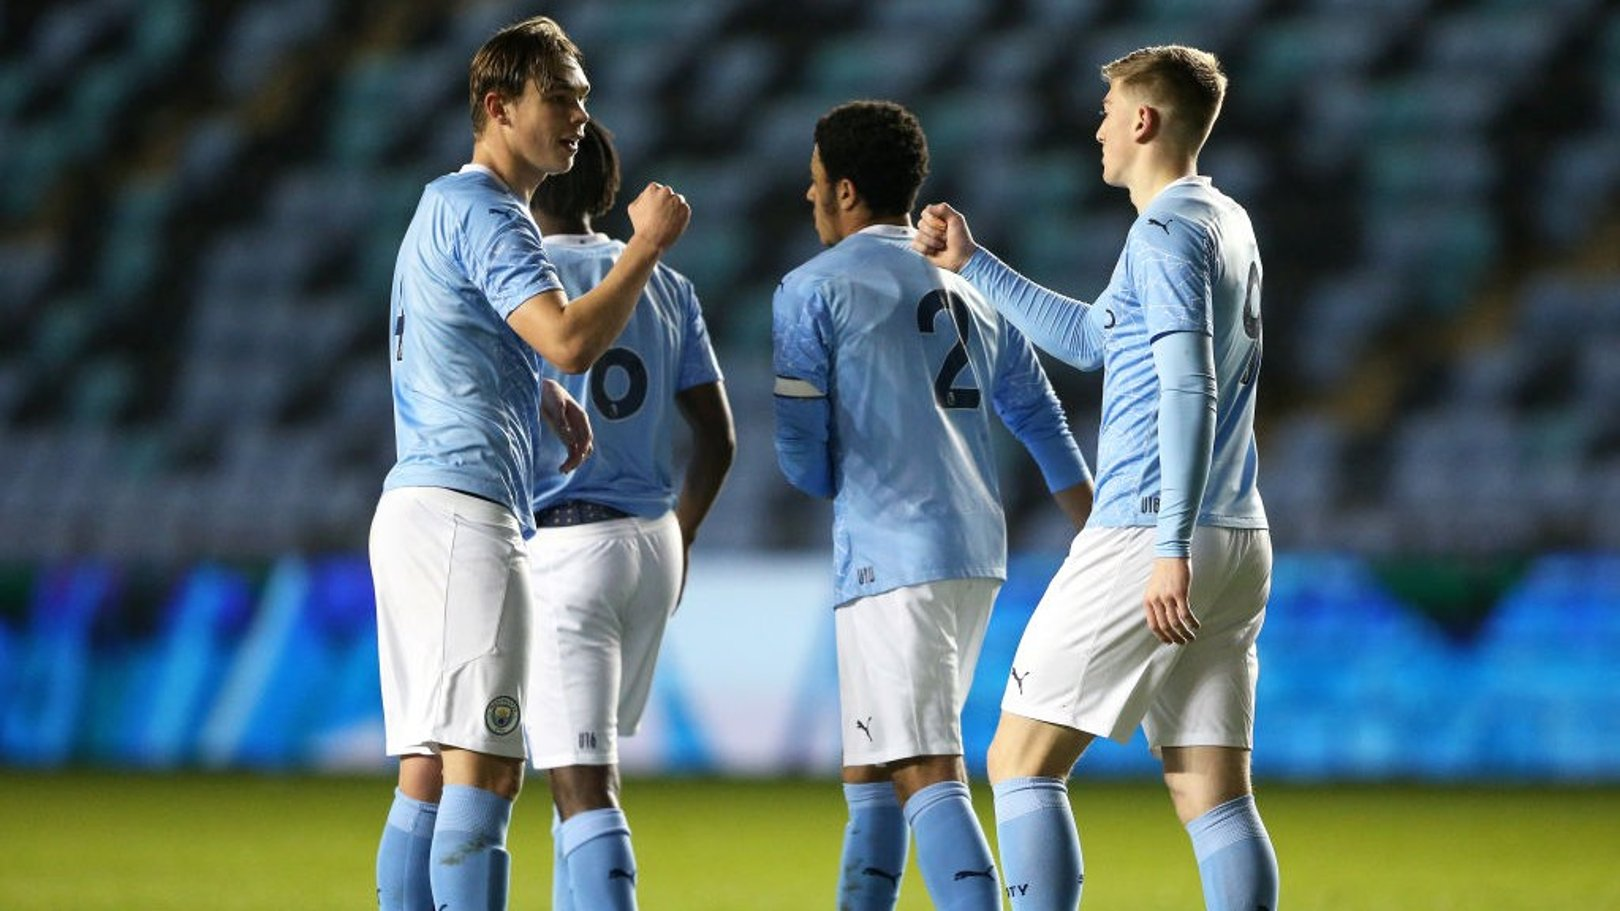 Date confirmed for FA Youth Cup fourth round tie